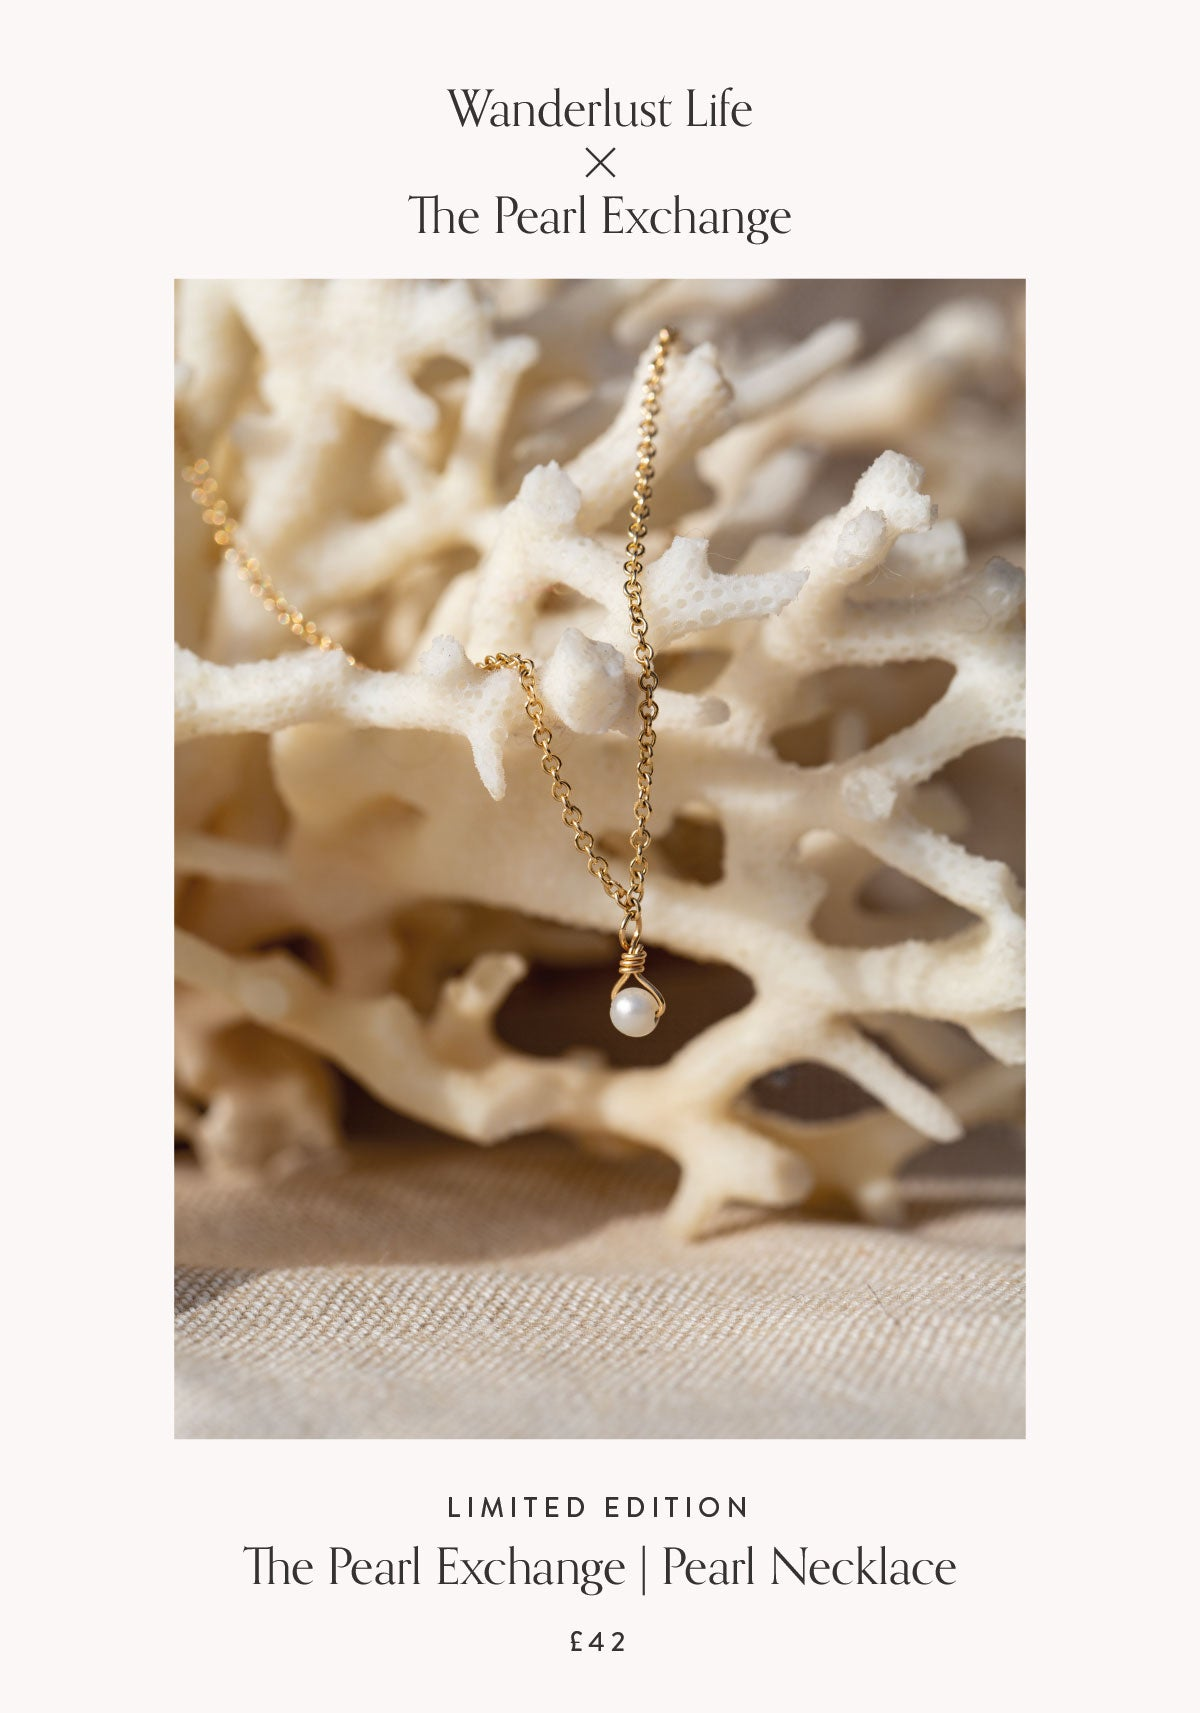 Wanderlust Life x The Pearl Exchange. Limited Edition Pearl Necklace.